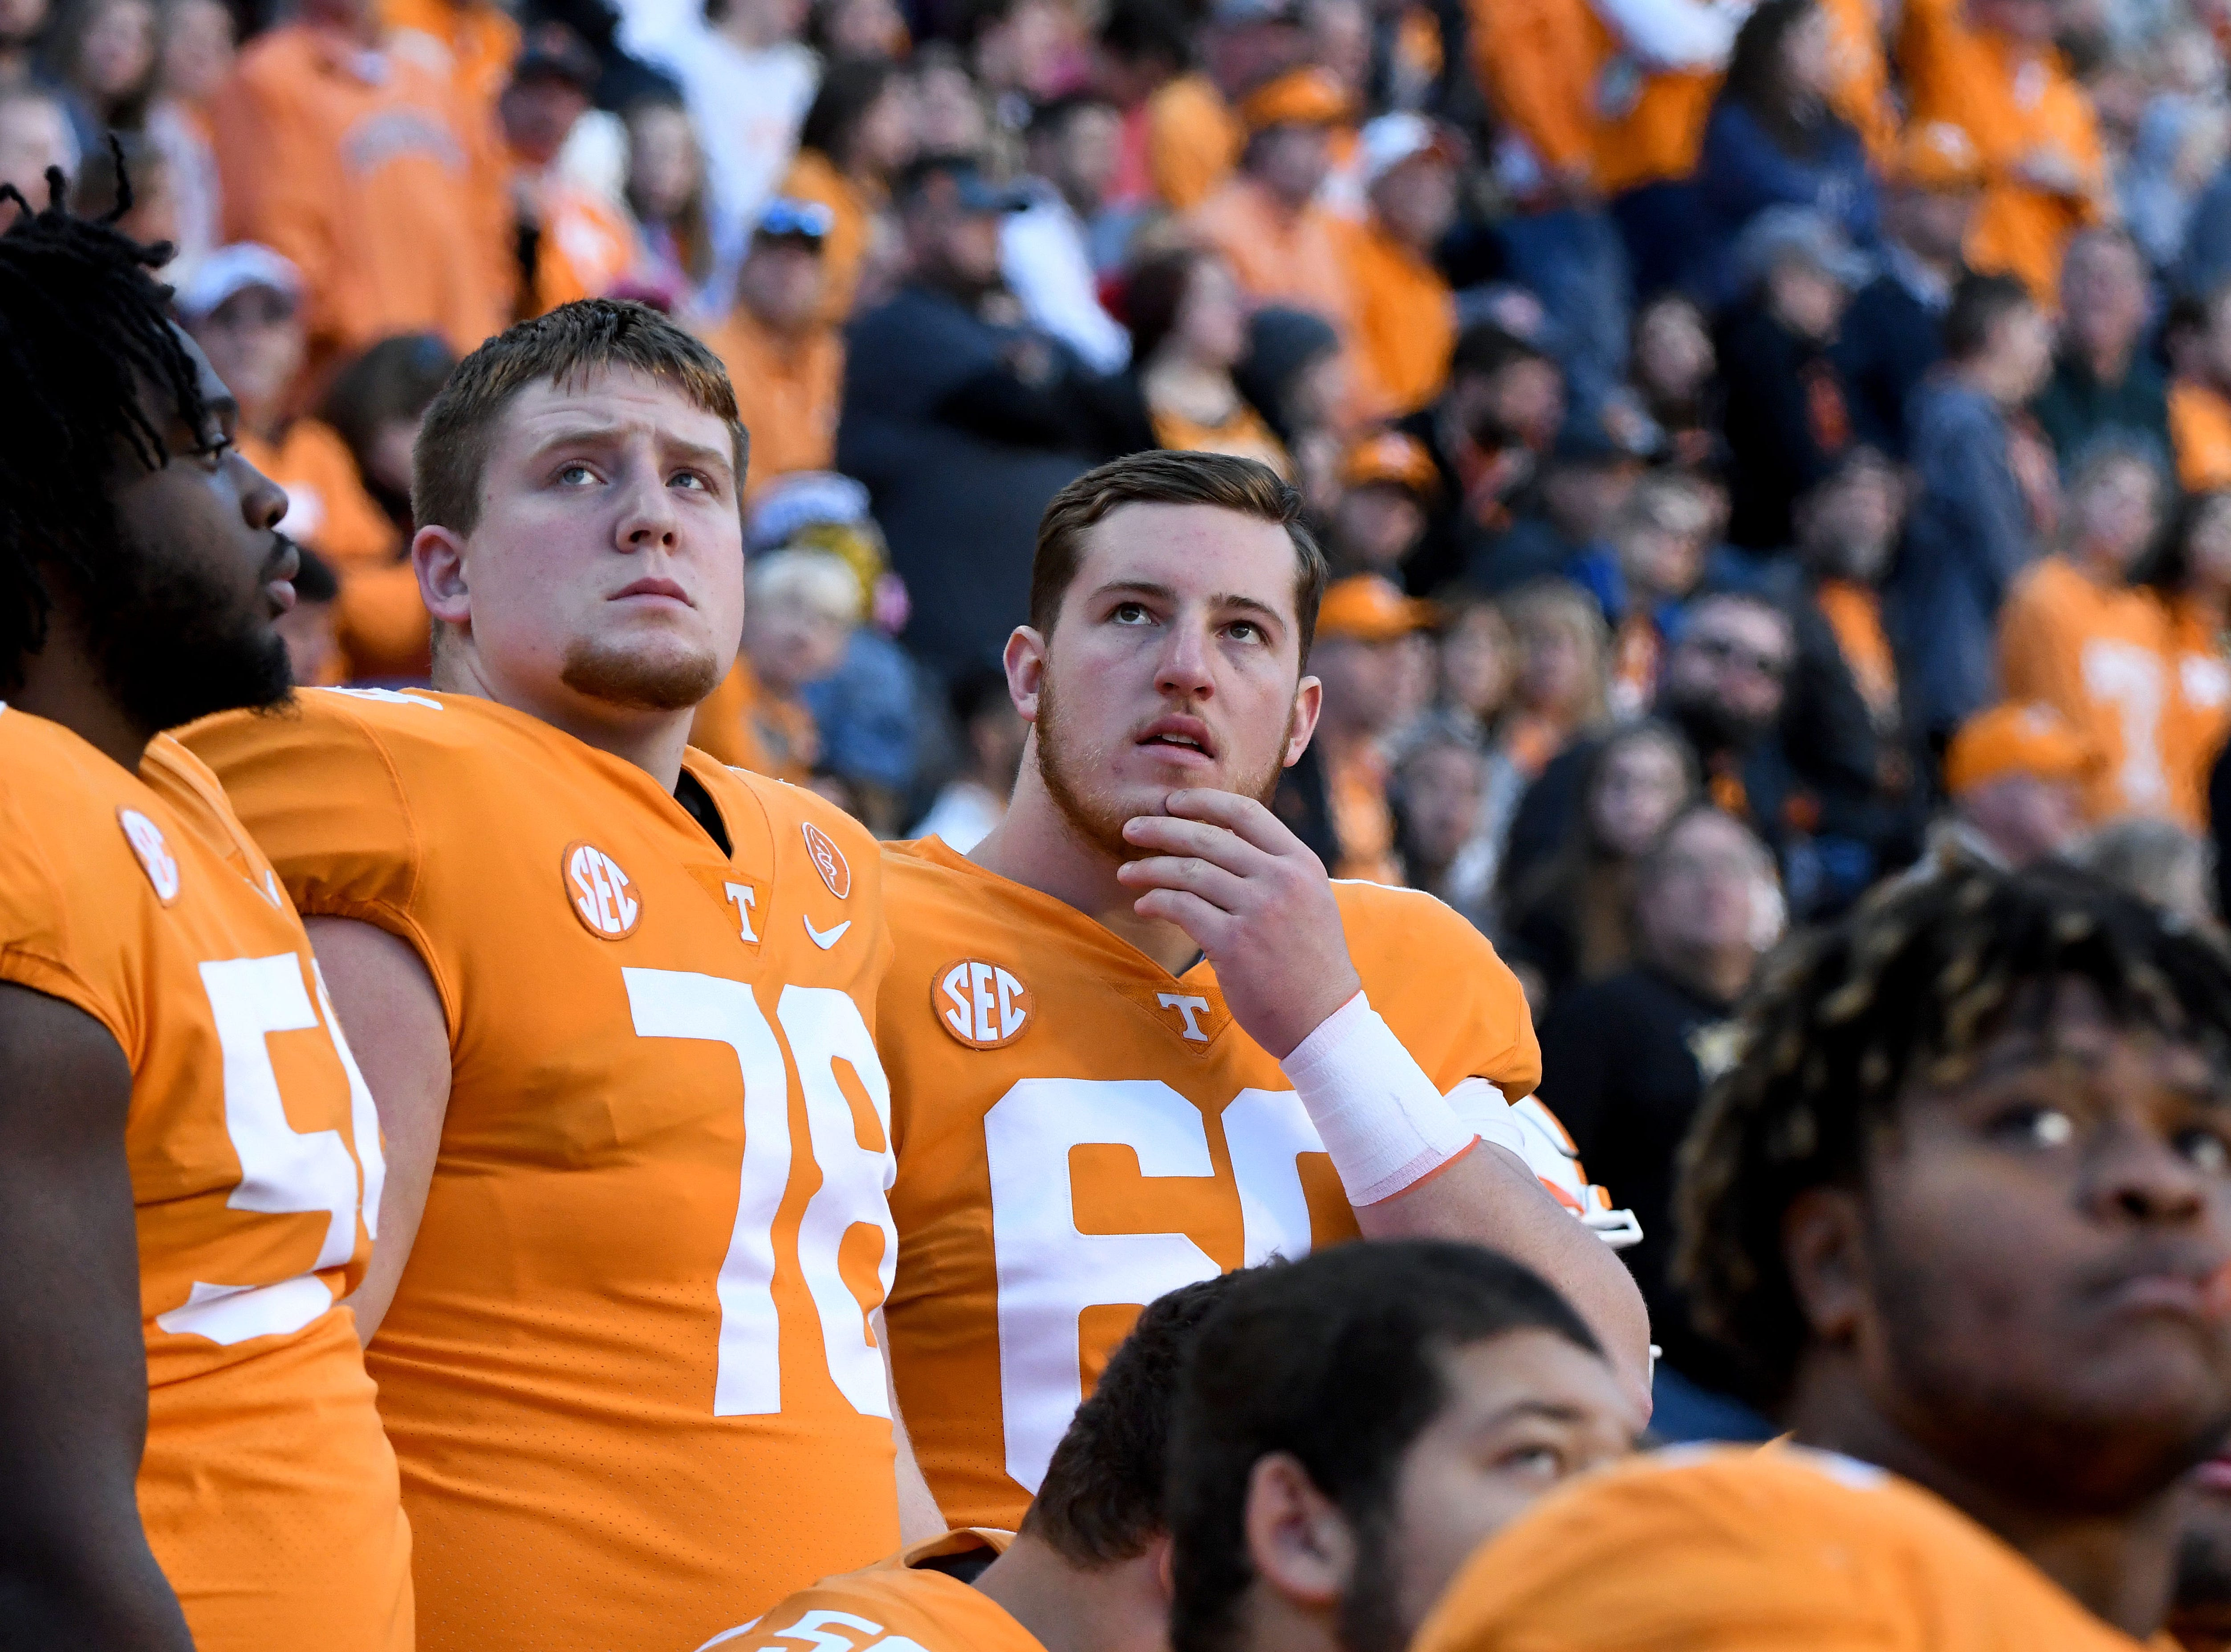 Tennessee players watch a replay from the bench during first half action against Missouri Saturday, Nov. 17, 2018 at Neyland Stadium in Knoxville, Tenn.